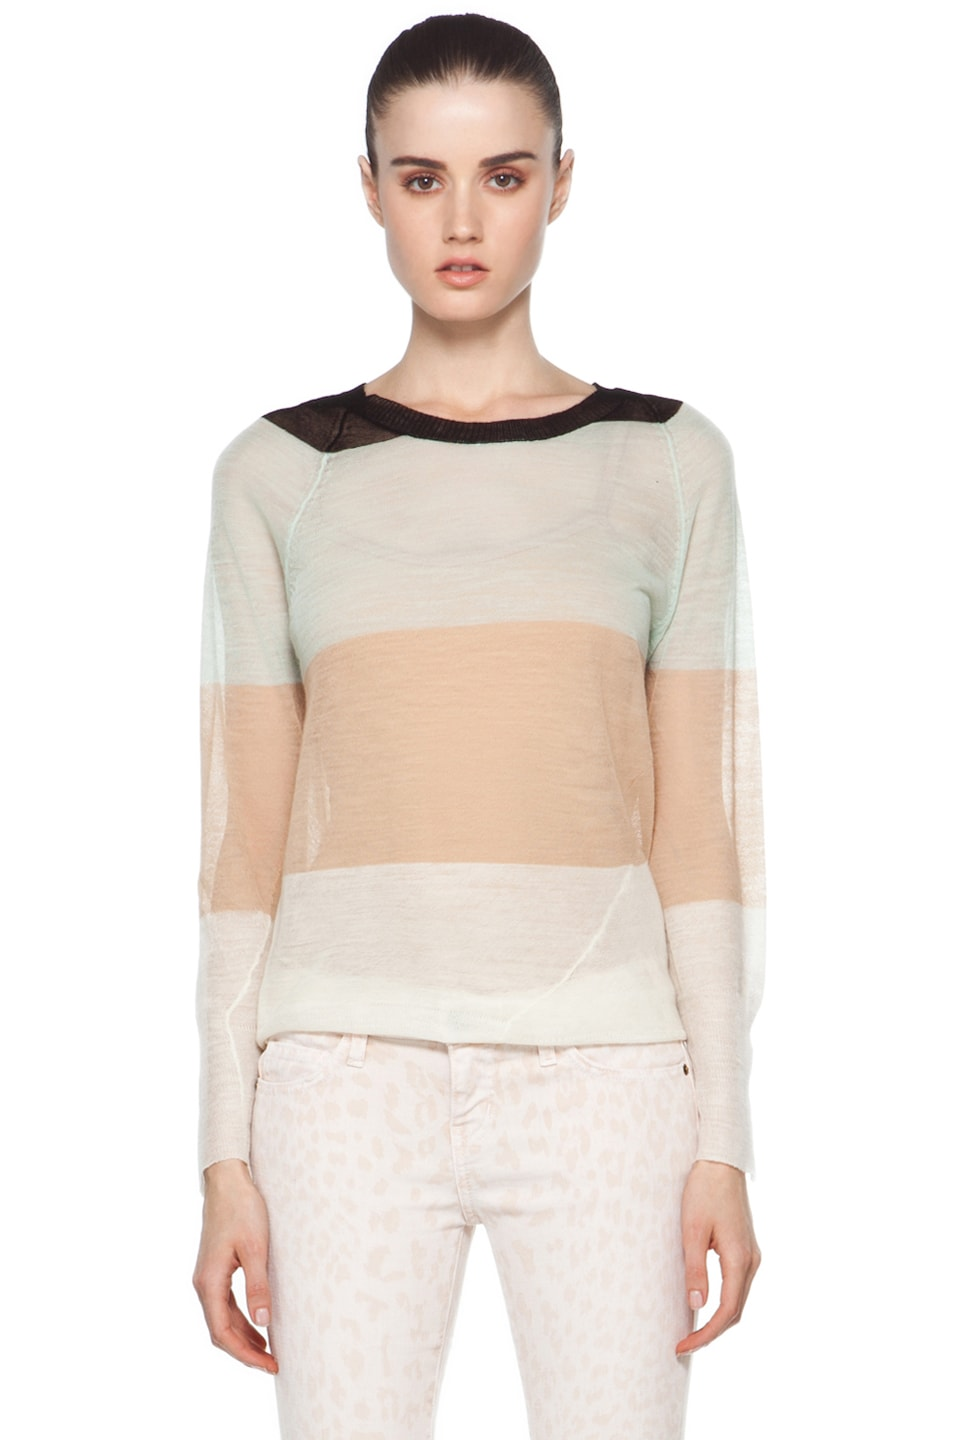 Image 1 of A.L.C. Cole Rugby Stripe Top in White/Beige/Mint/Black